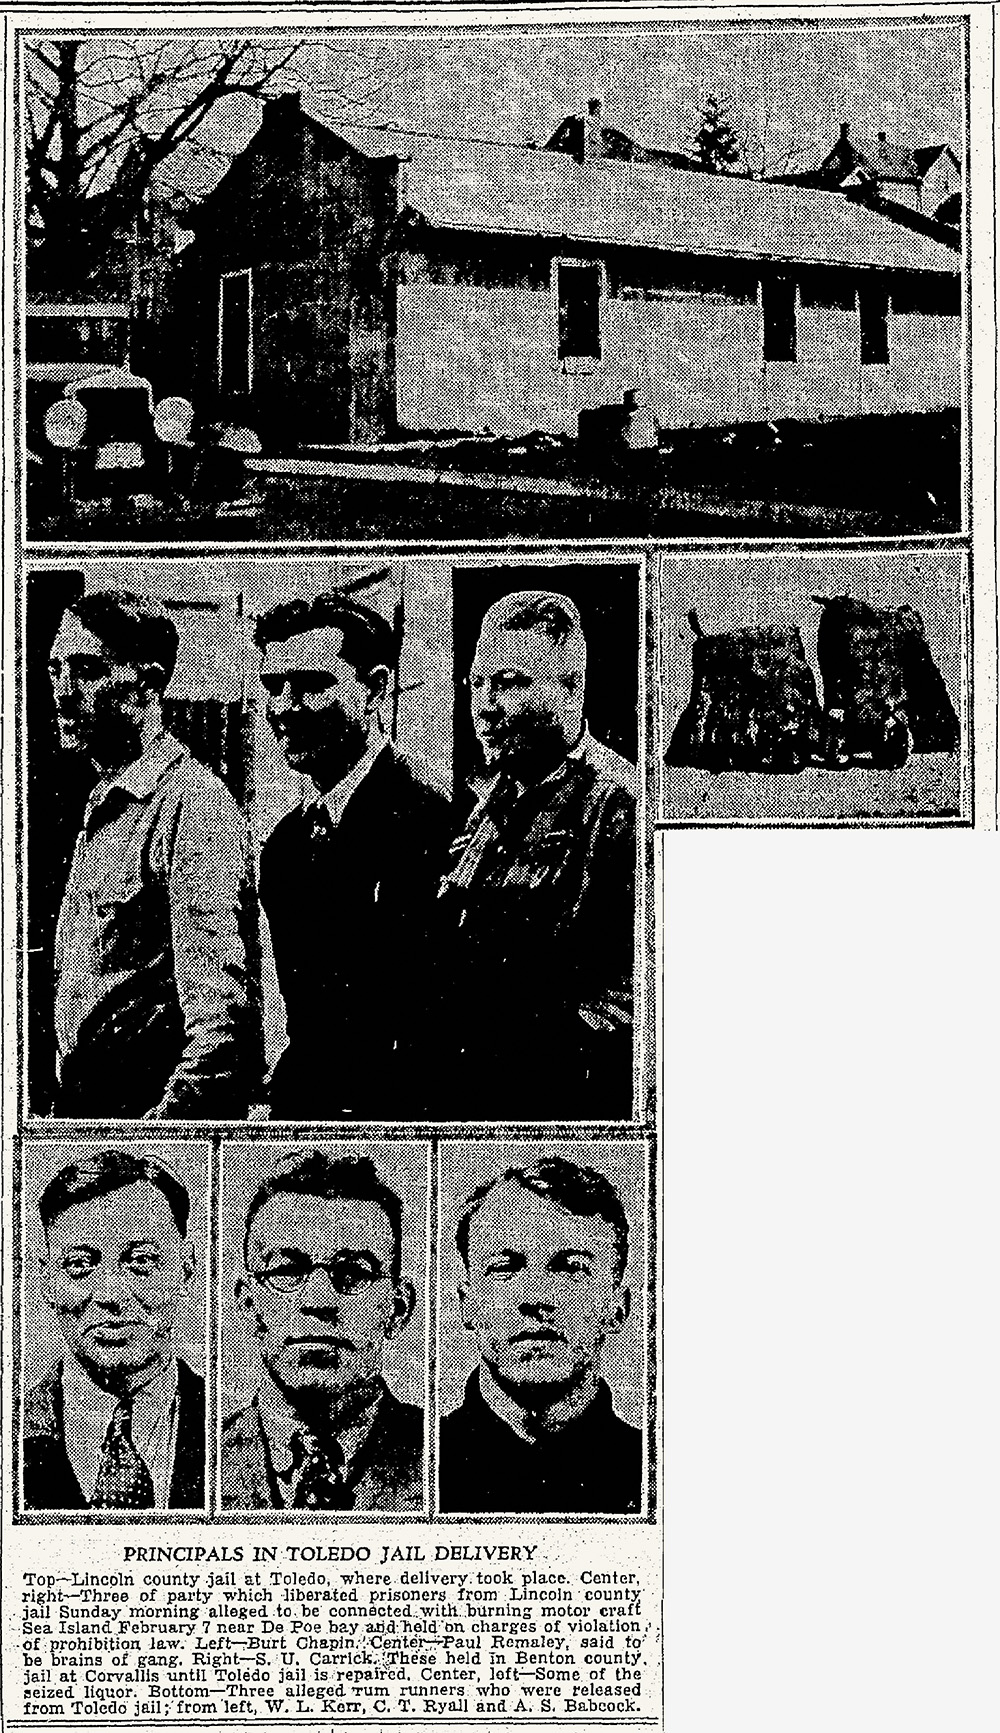 Newspaper clipping photos show jail house, 3 men standing side-by-side, seized liquor, another photo of 3 men's mug shots.